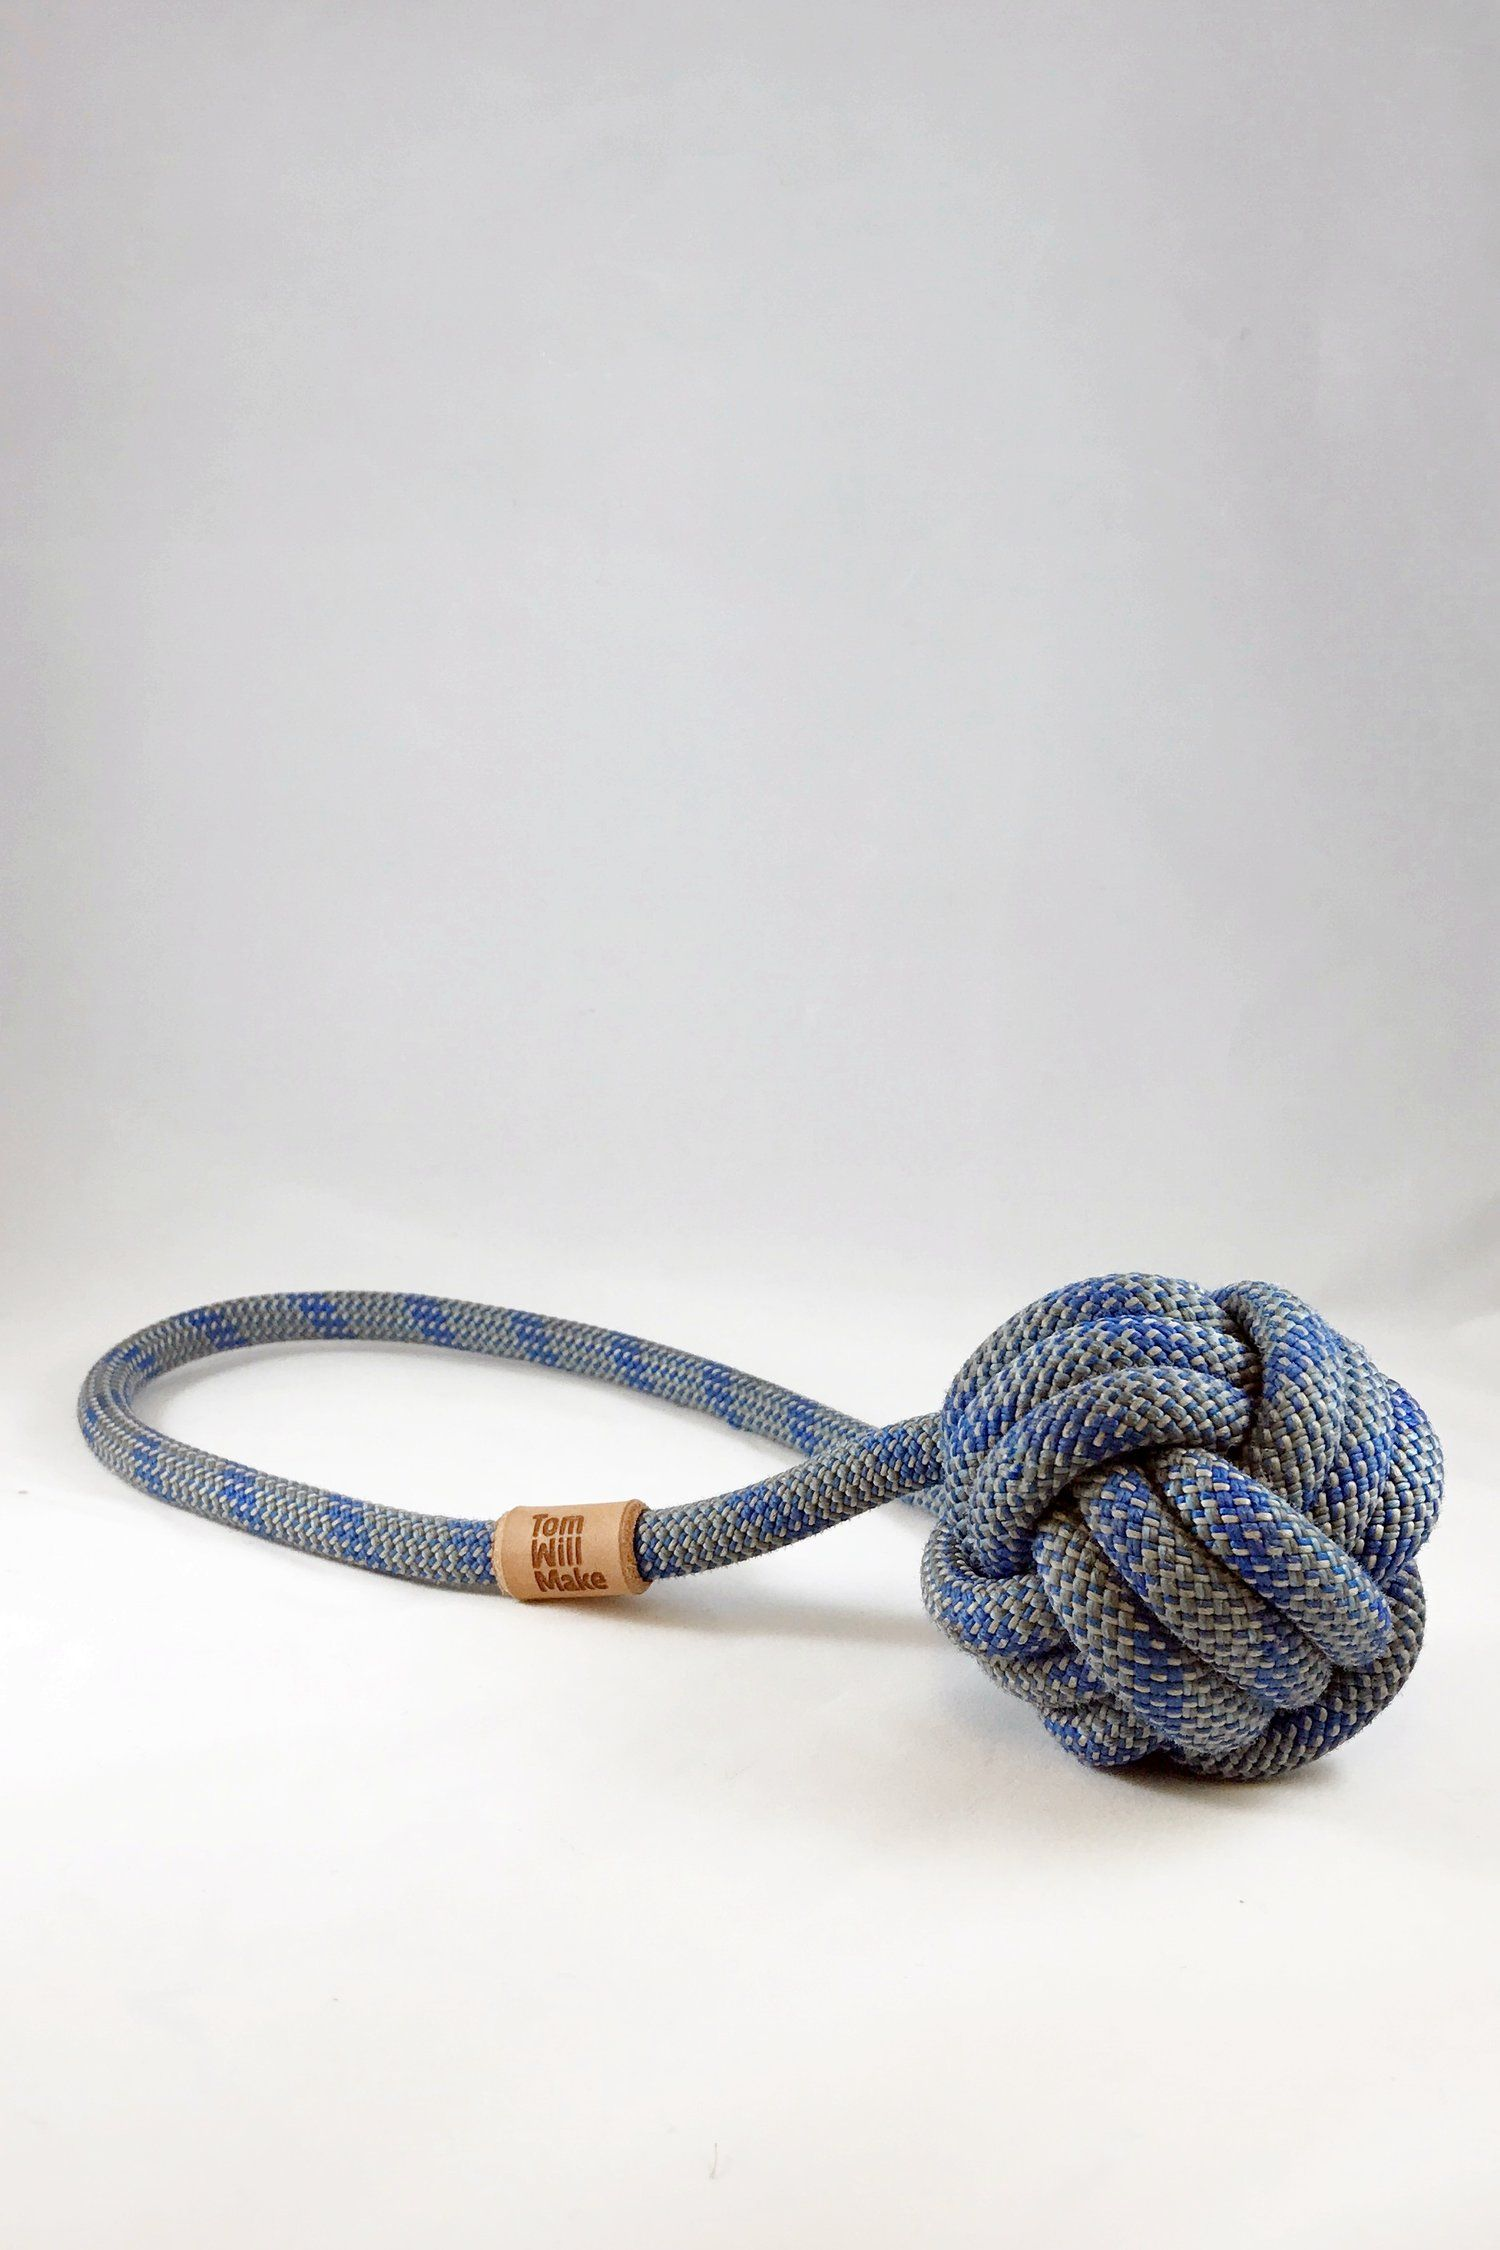 The Monkey S Fist Is A Hefty Dog Toy Made From Reclaimed Climbing